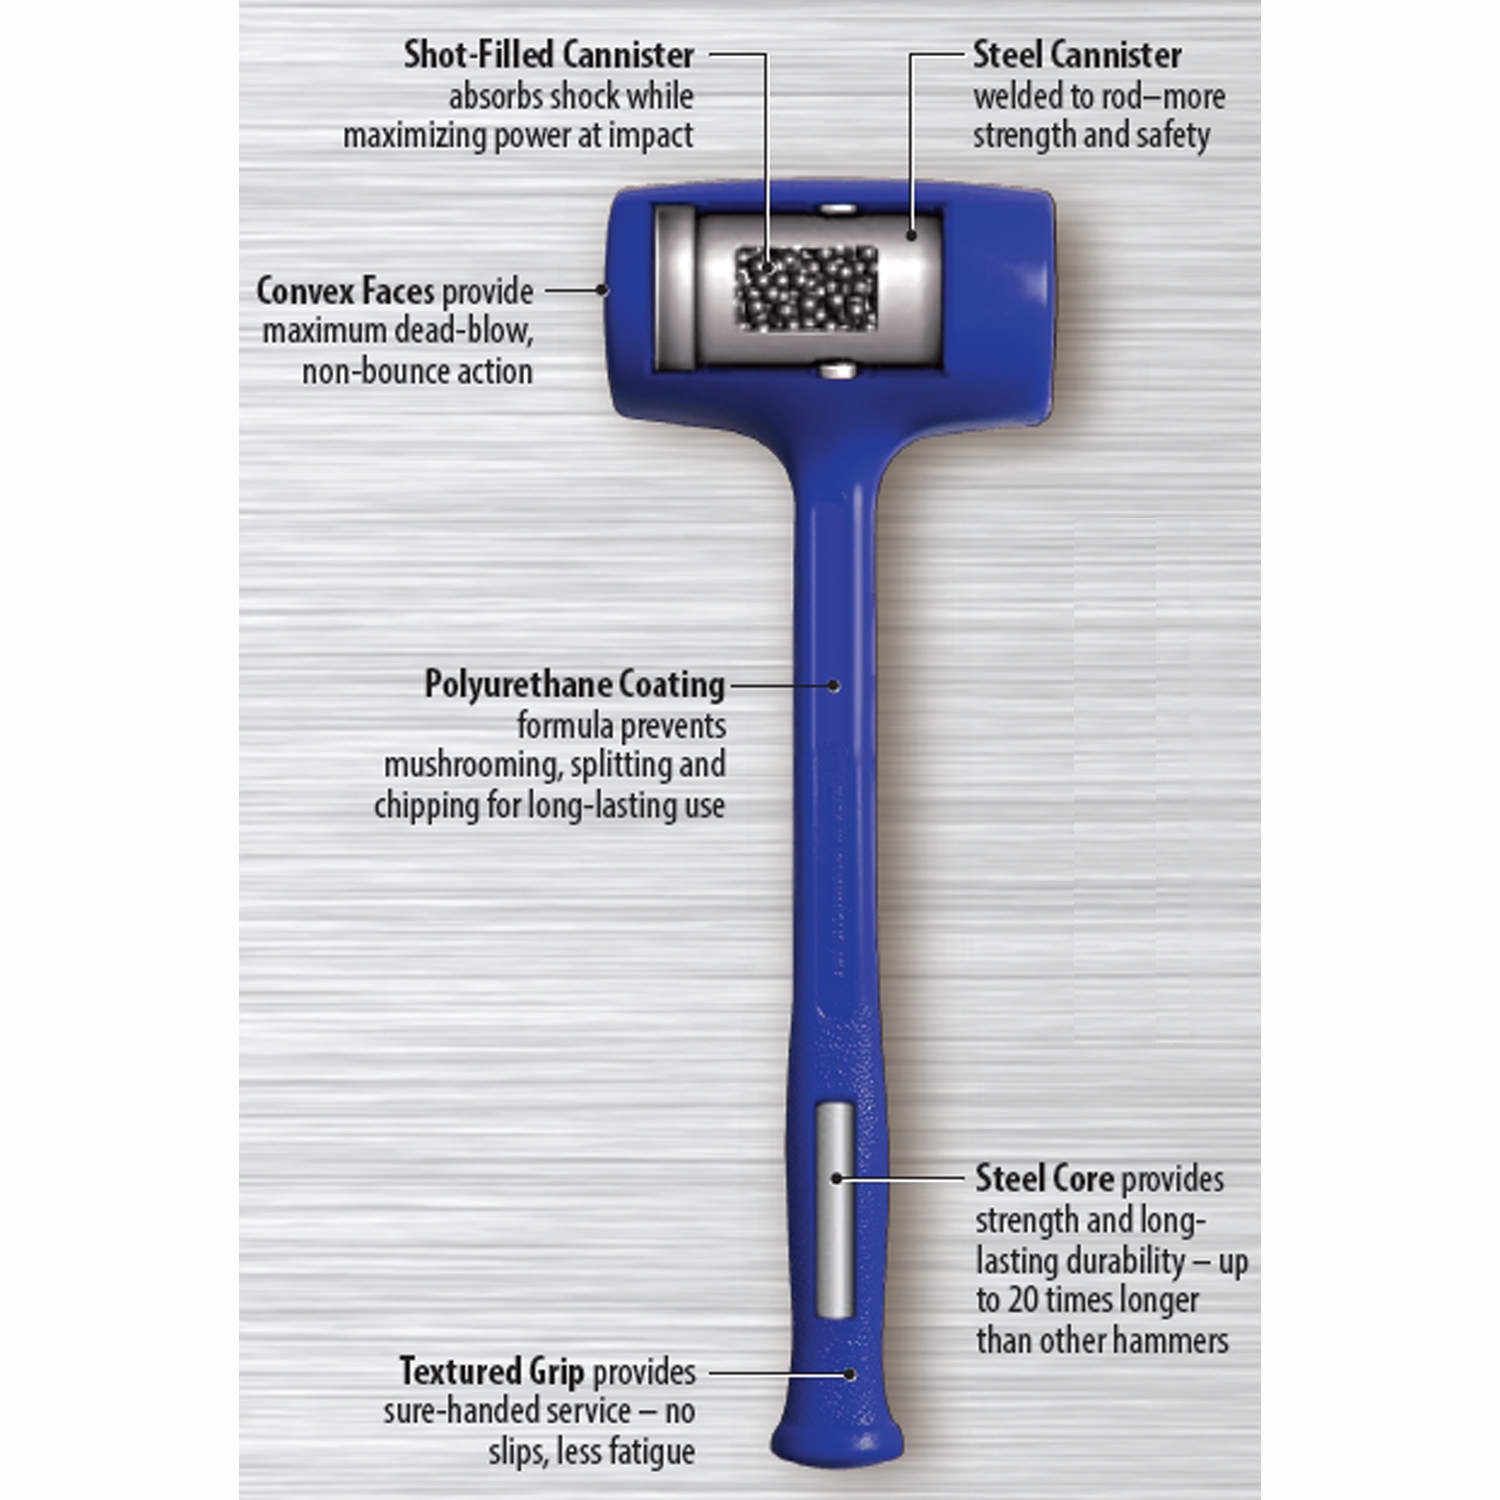 Bh 63 Bm2 Dead Blow Bossing Mallet Non Marking Mallet Baileigh Industrial This dead blow hammer can be used for automative, wood working or around the house. 36oz dead blow bossing mallet bh 63 bm2